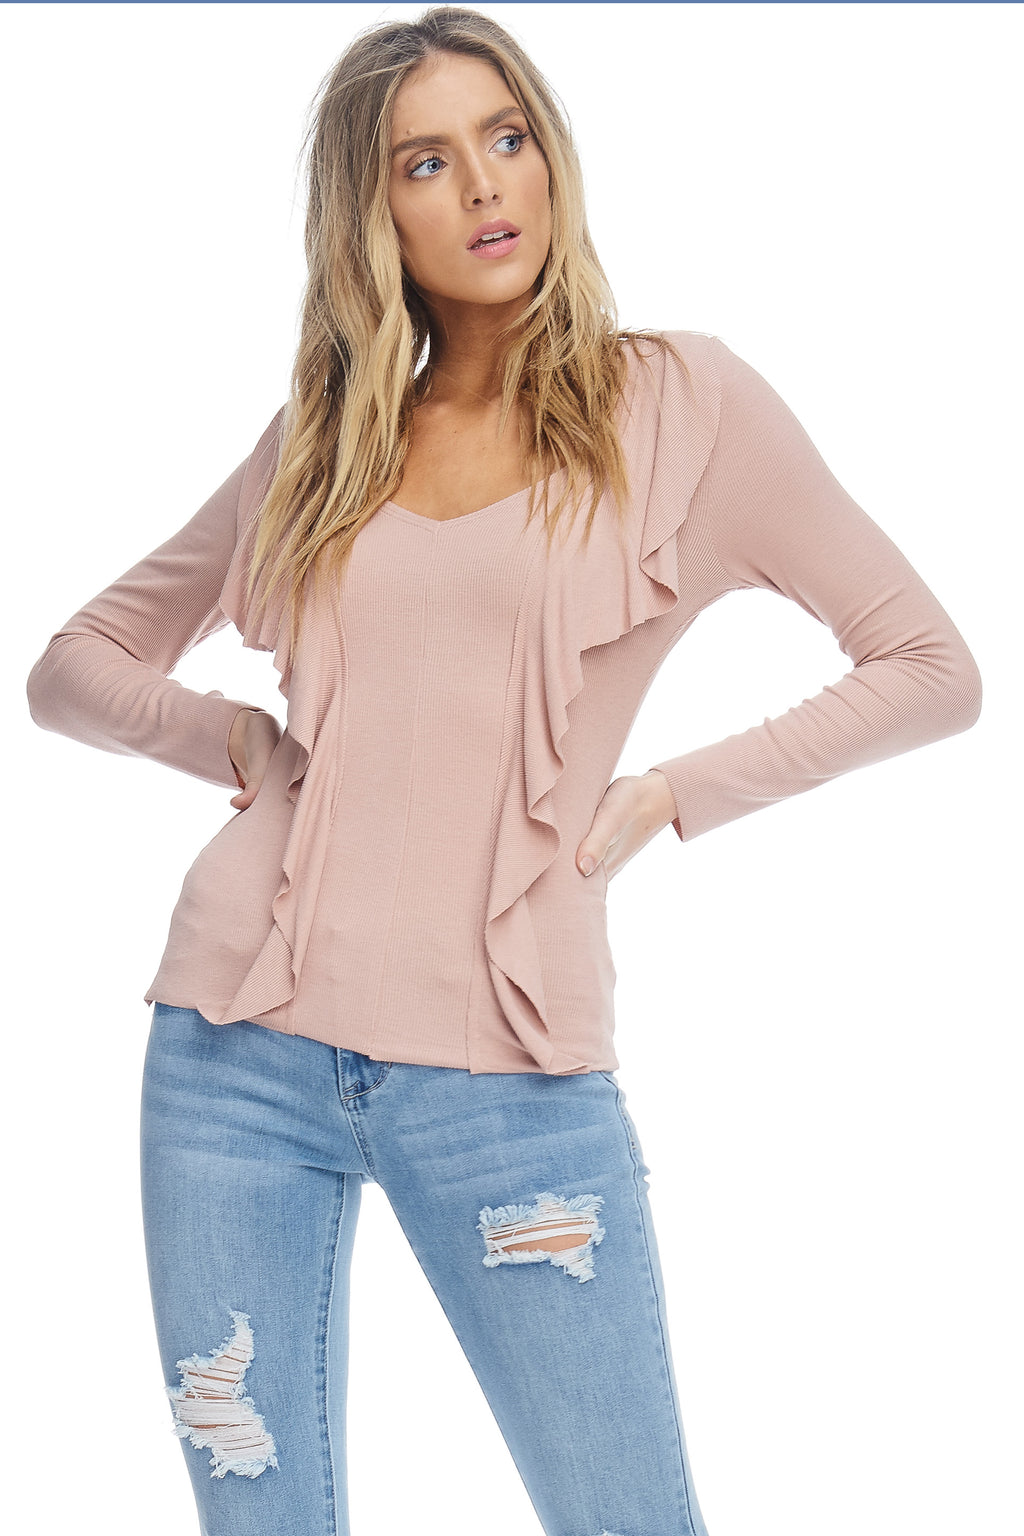 W18-120 Fitted Ruffle Seam Blouse